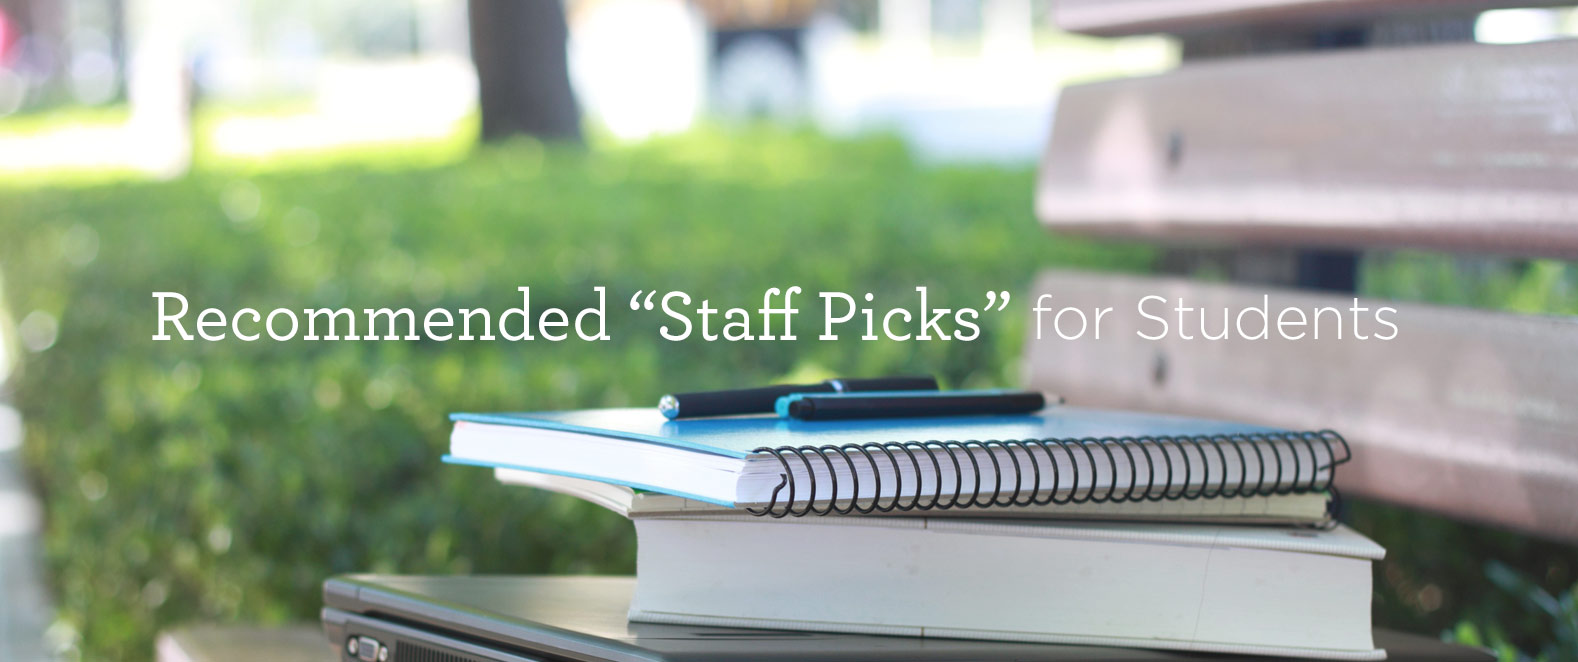 Staff Picks for Students